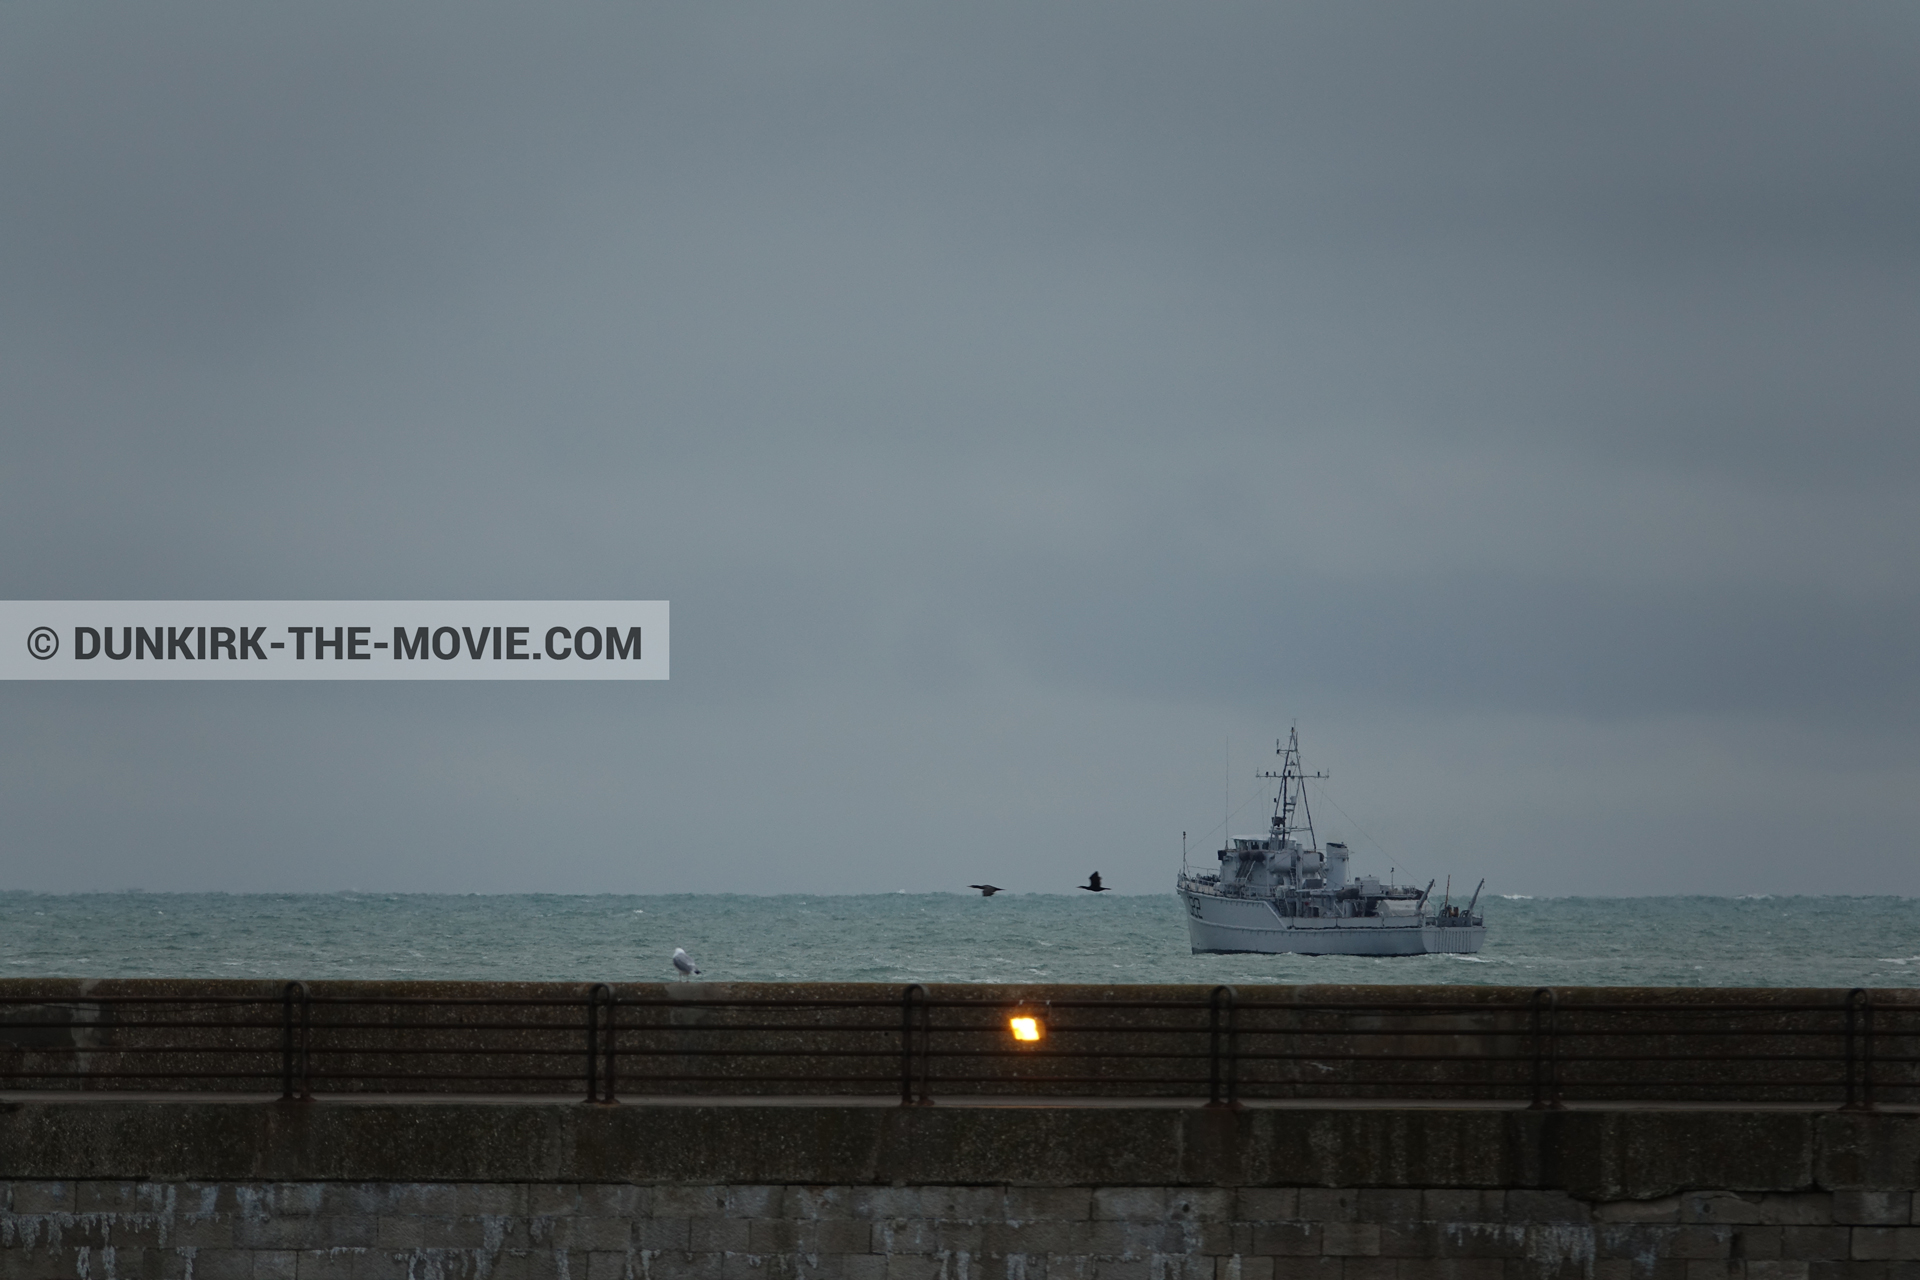 Picture with boat, grey sky, EST pier,  from behind the scene of the Dunkirk movie by Nolan